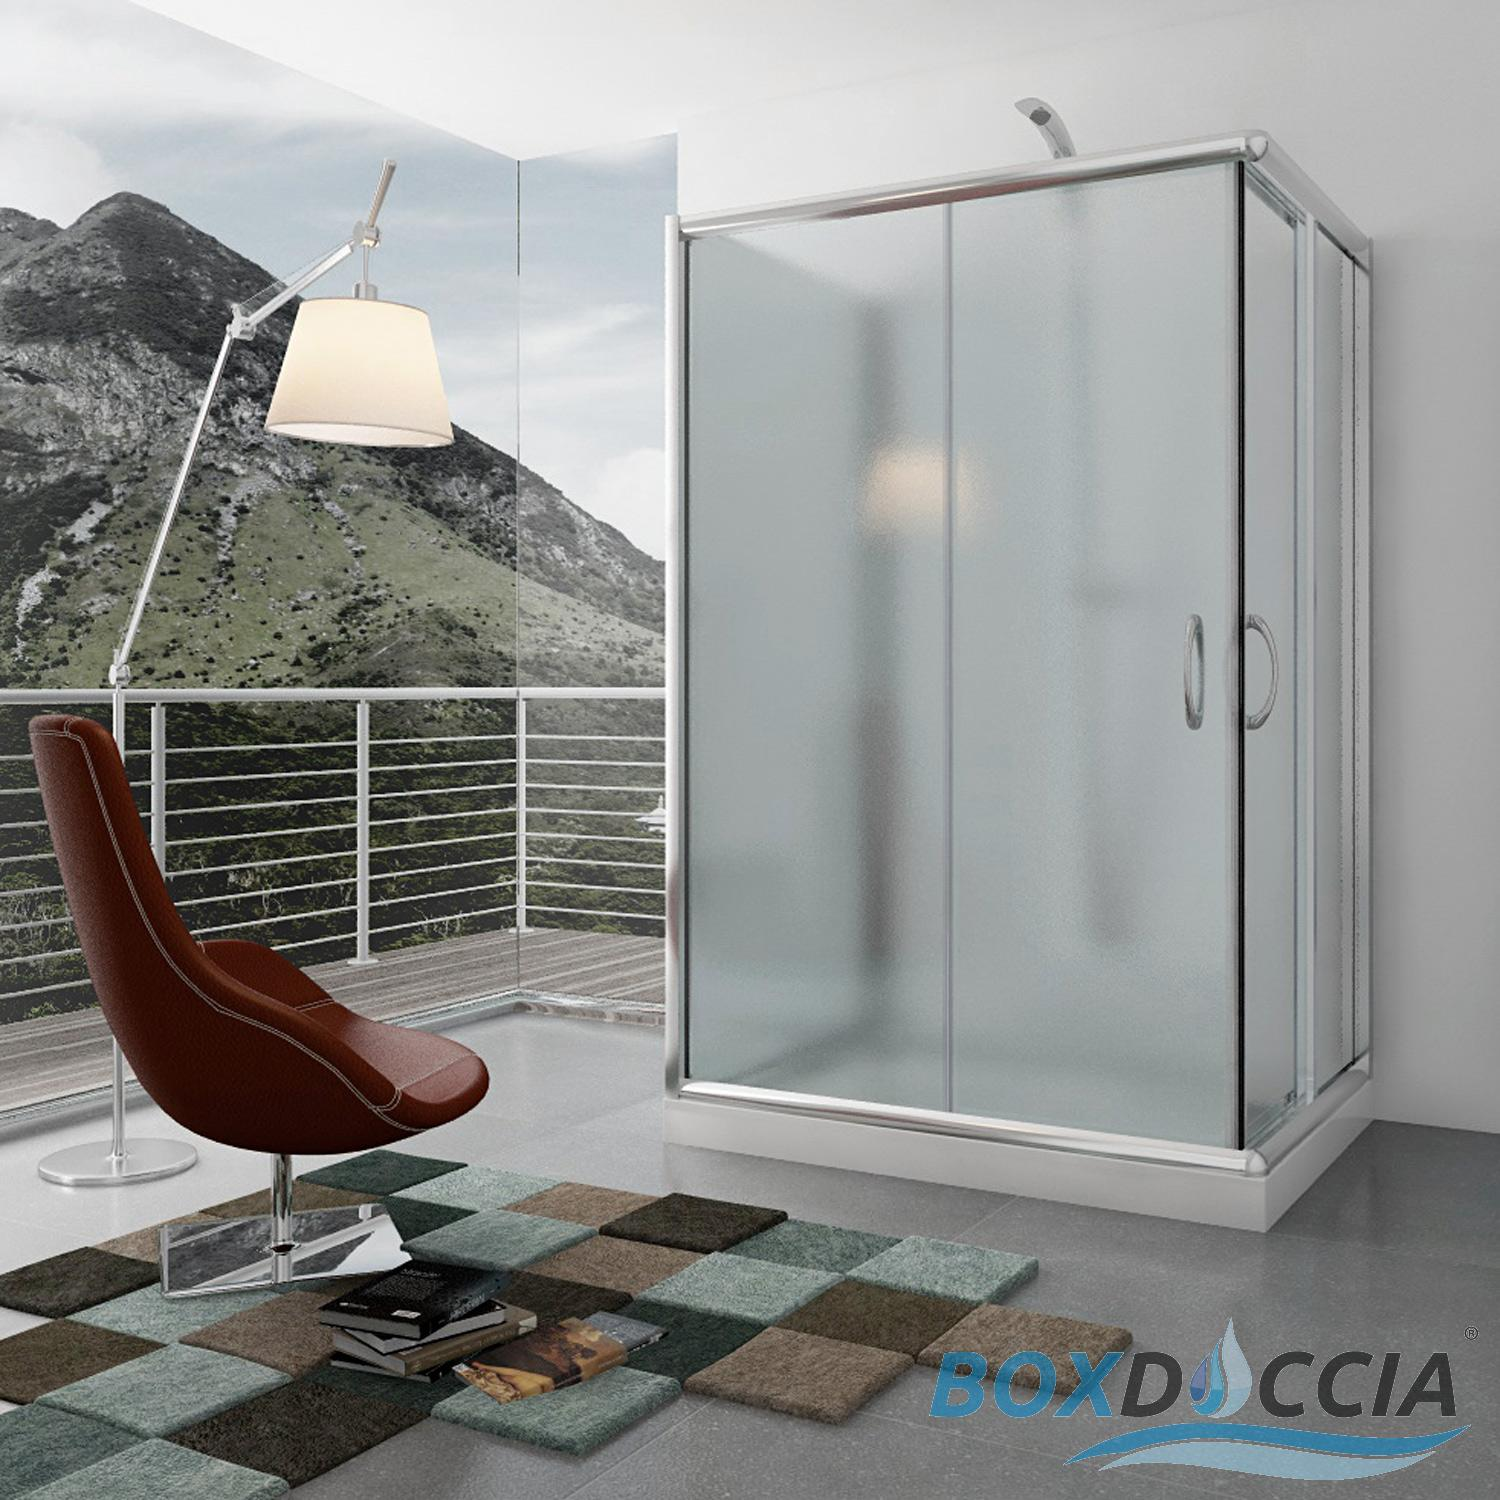 SHOWER ENCLOSURE 3 SIDED SLIDING DOOR CORNER ENTRY GLASS CUBICLE ...